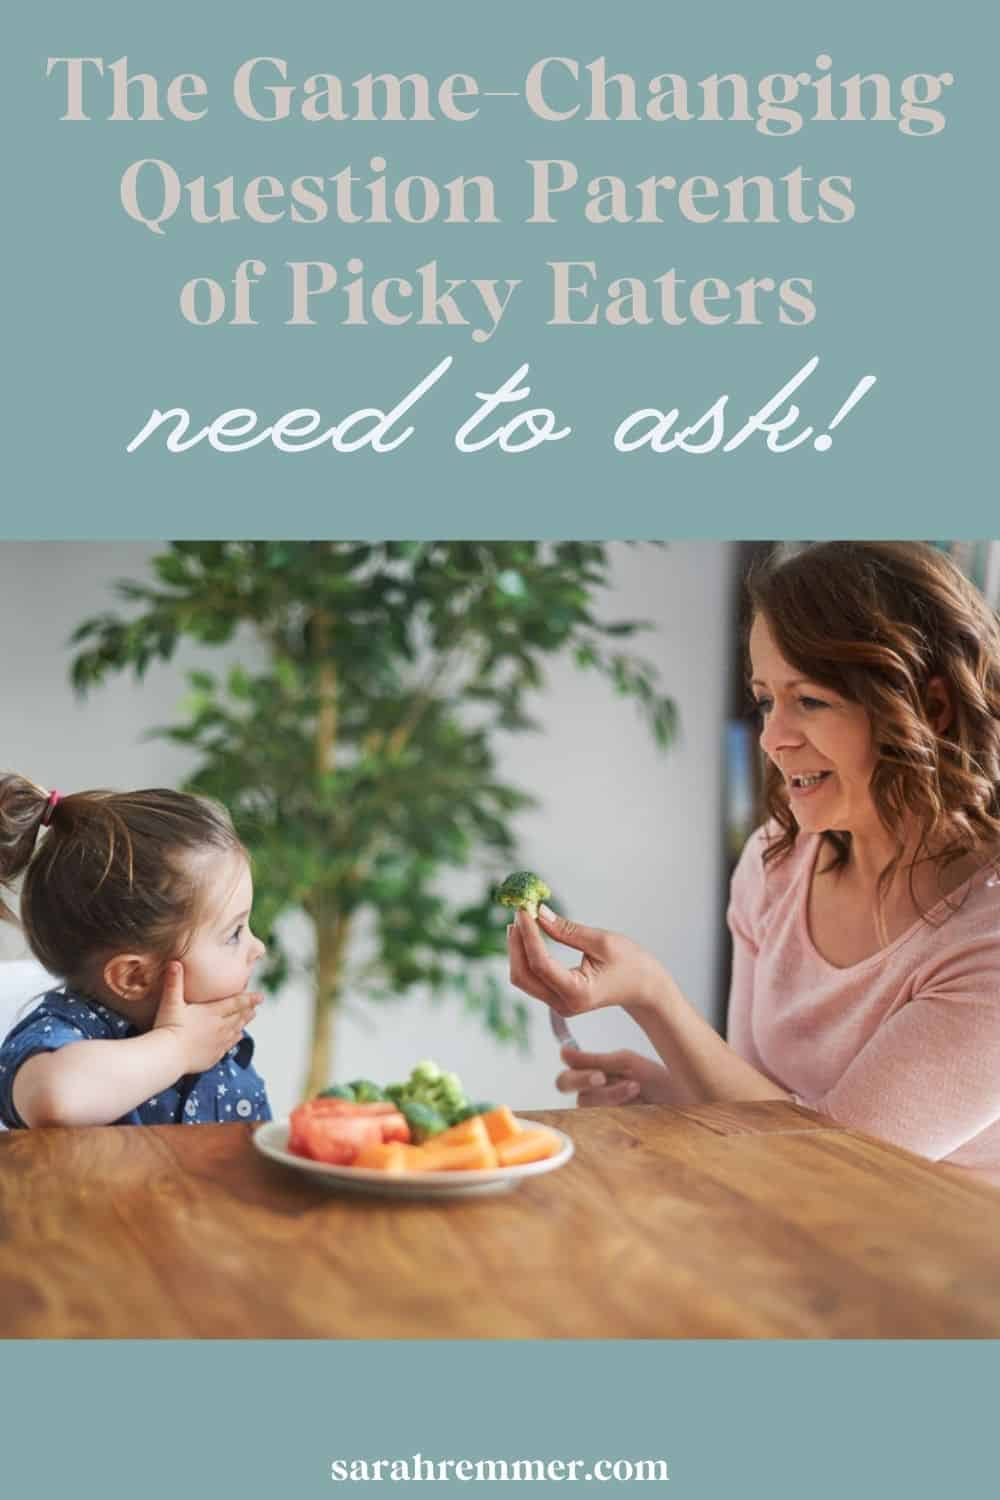 The Game Changing Question Parents of Picky Eaters Need to Ask